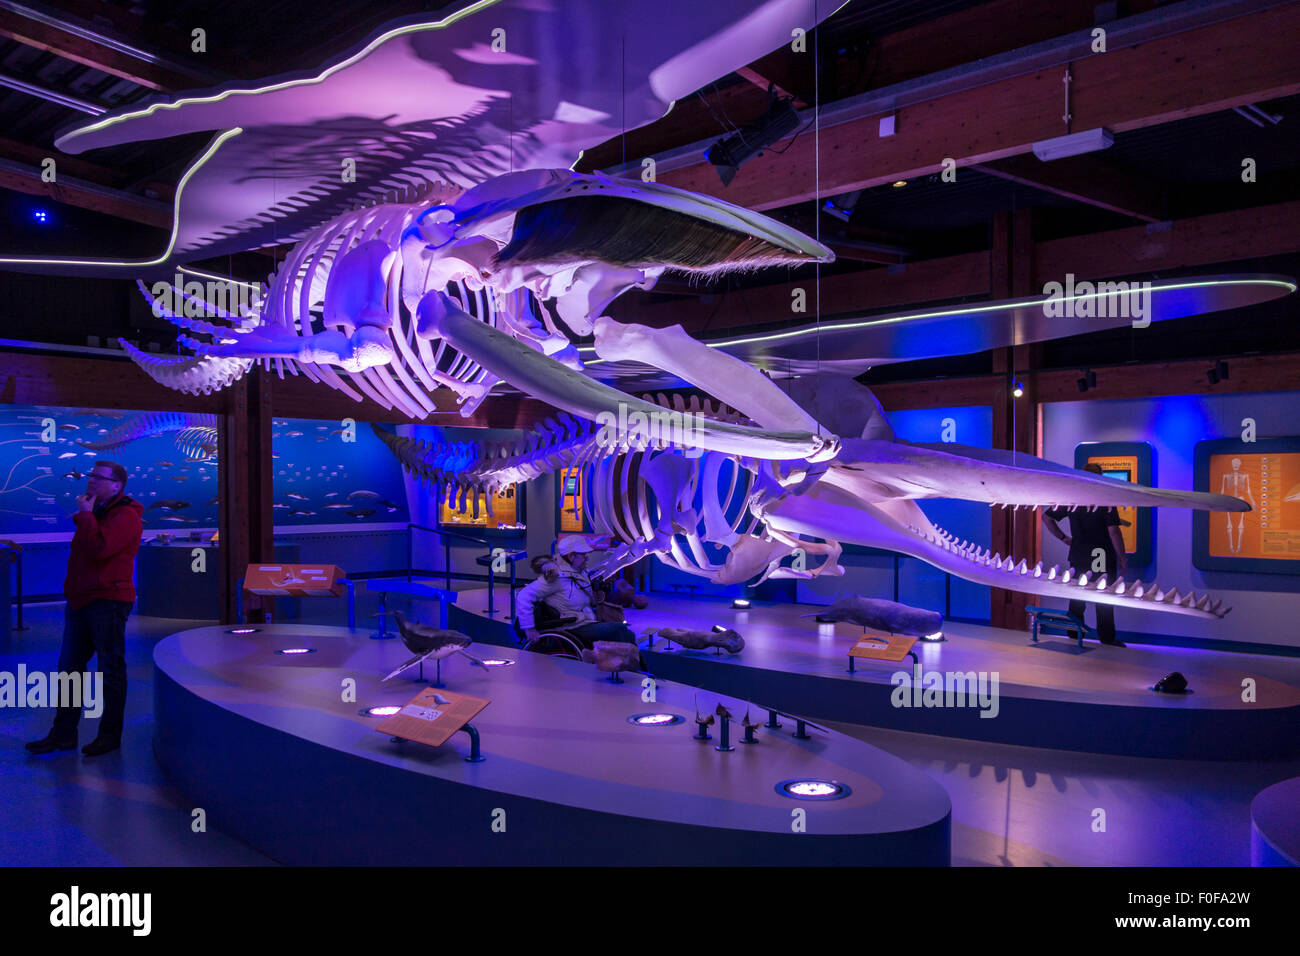 Exhibition of whale skeletons at Ecomare, centre for nature and marine life on Texel, The Netherlands - Stock Image